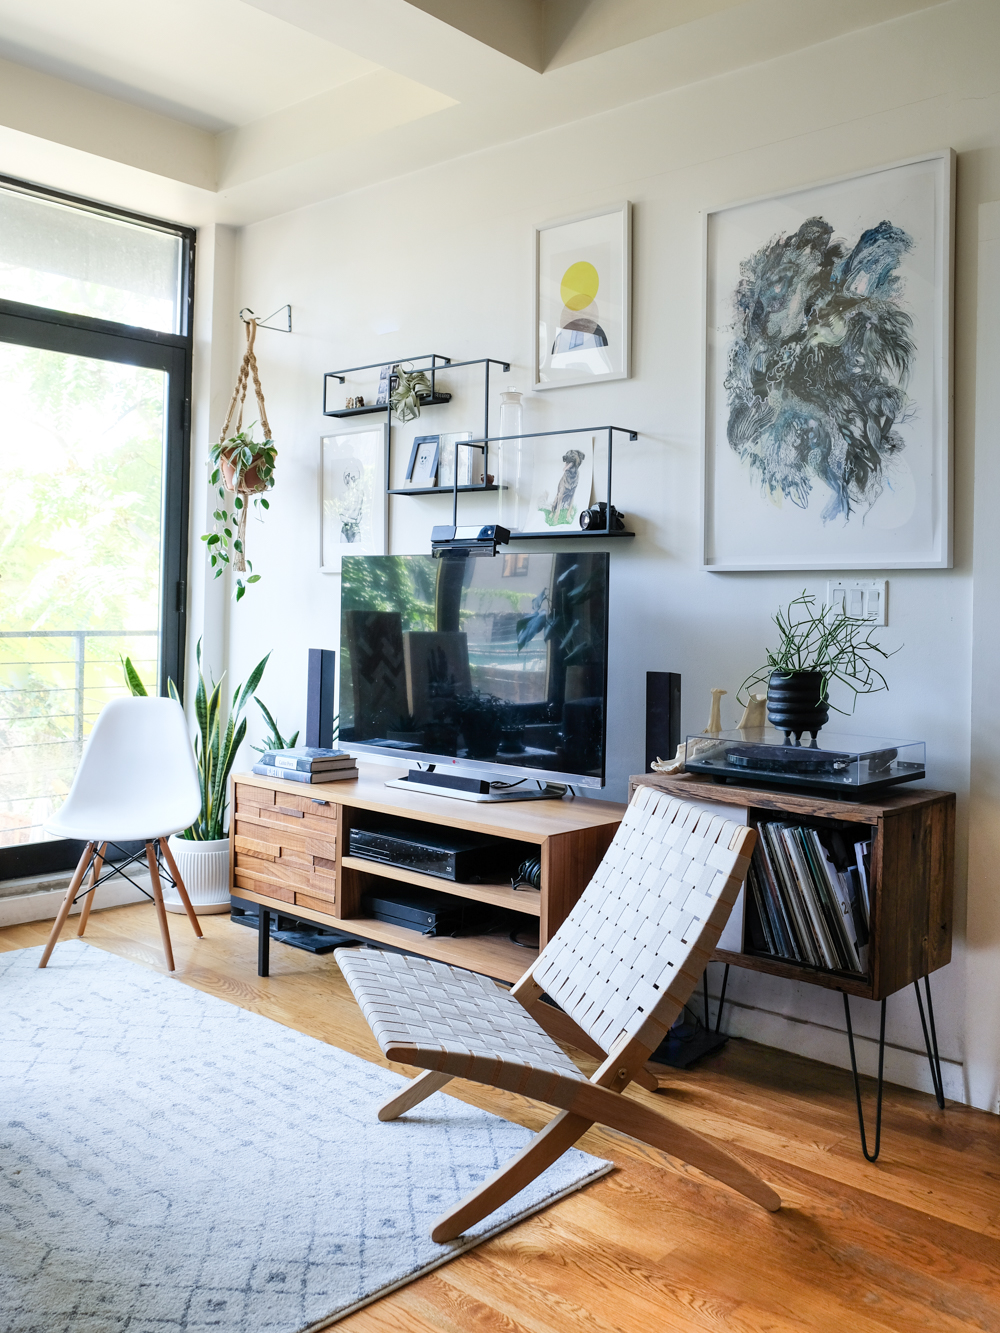 Decorating around a TV is always challenging, but gallery wall is a nice way for it to blend in.